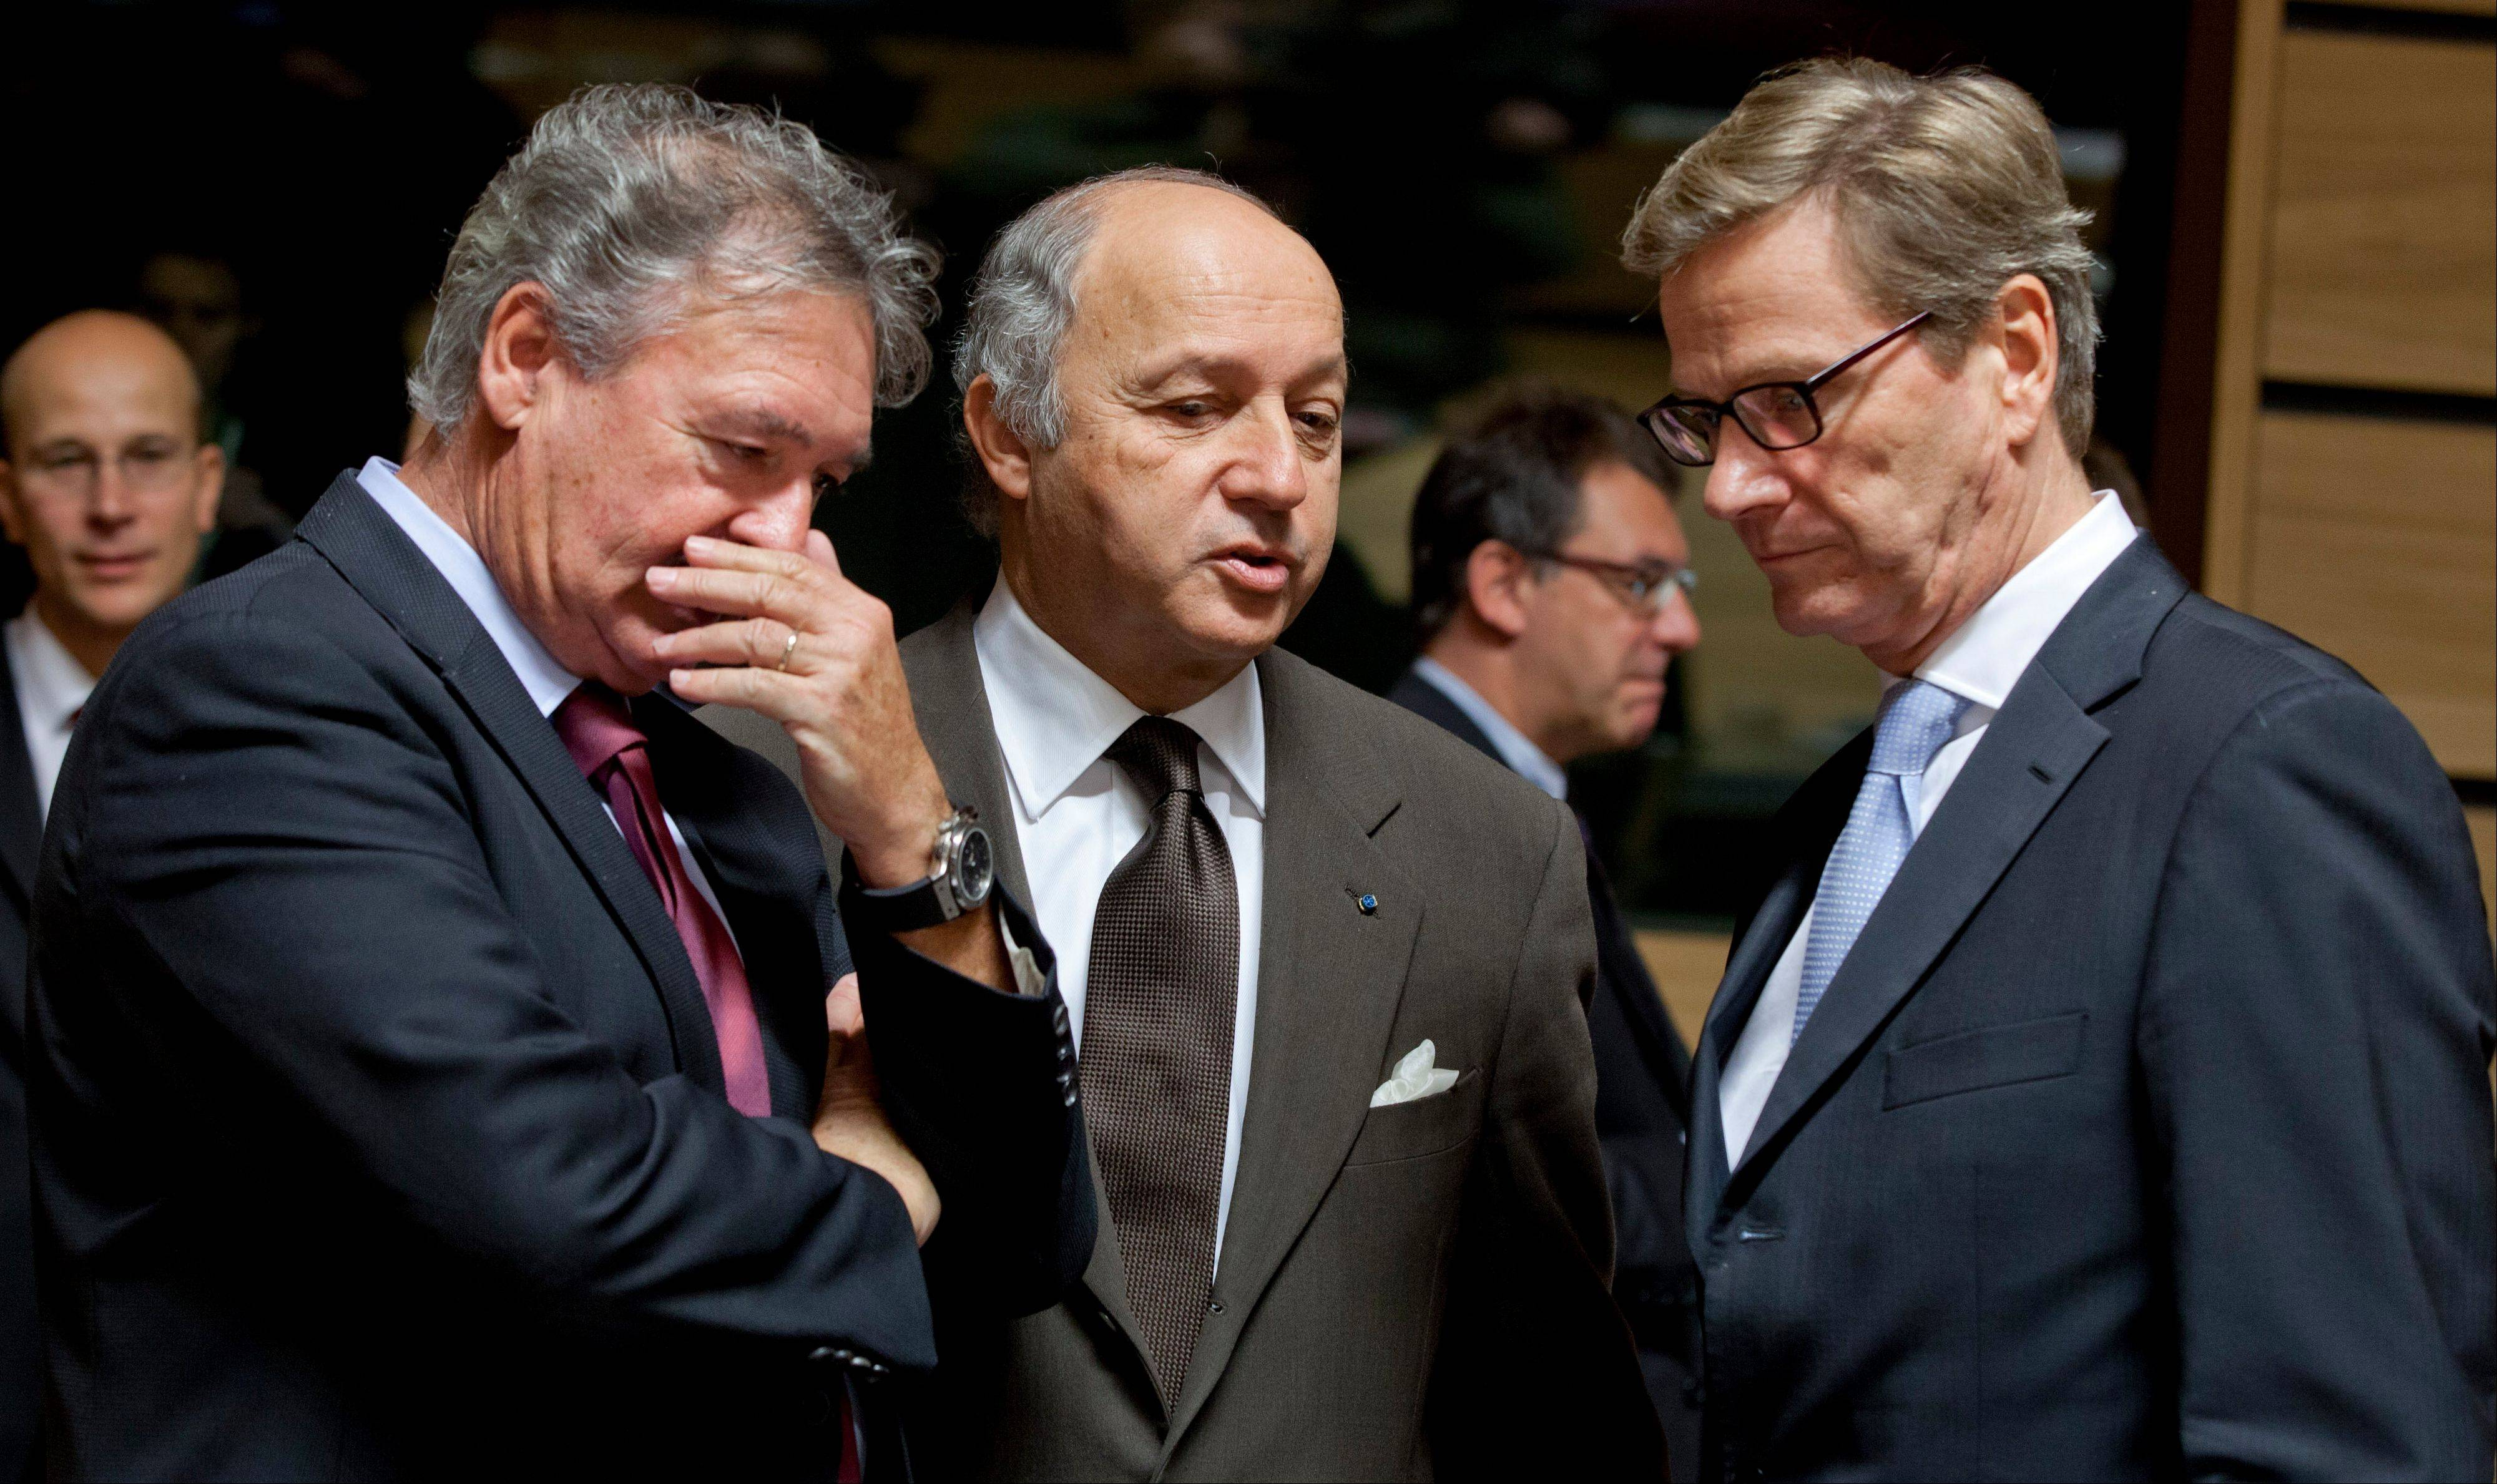 Luxembourg's Foreign Minister Jean Asselborn, left, French Foreign Minister Laurent Fabius and German Foreign Minister Guido Westerwelle share a word during a meeting of EU Foreign Ministers in Luxembourg on Monday. Britain, Germany and France say they expect the European Union to approve even tougher sanctions on Iran to prevent it from developing nuclear weapons.